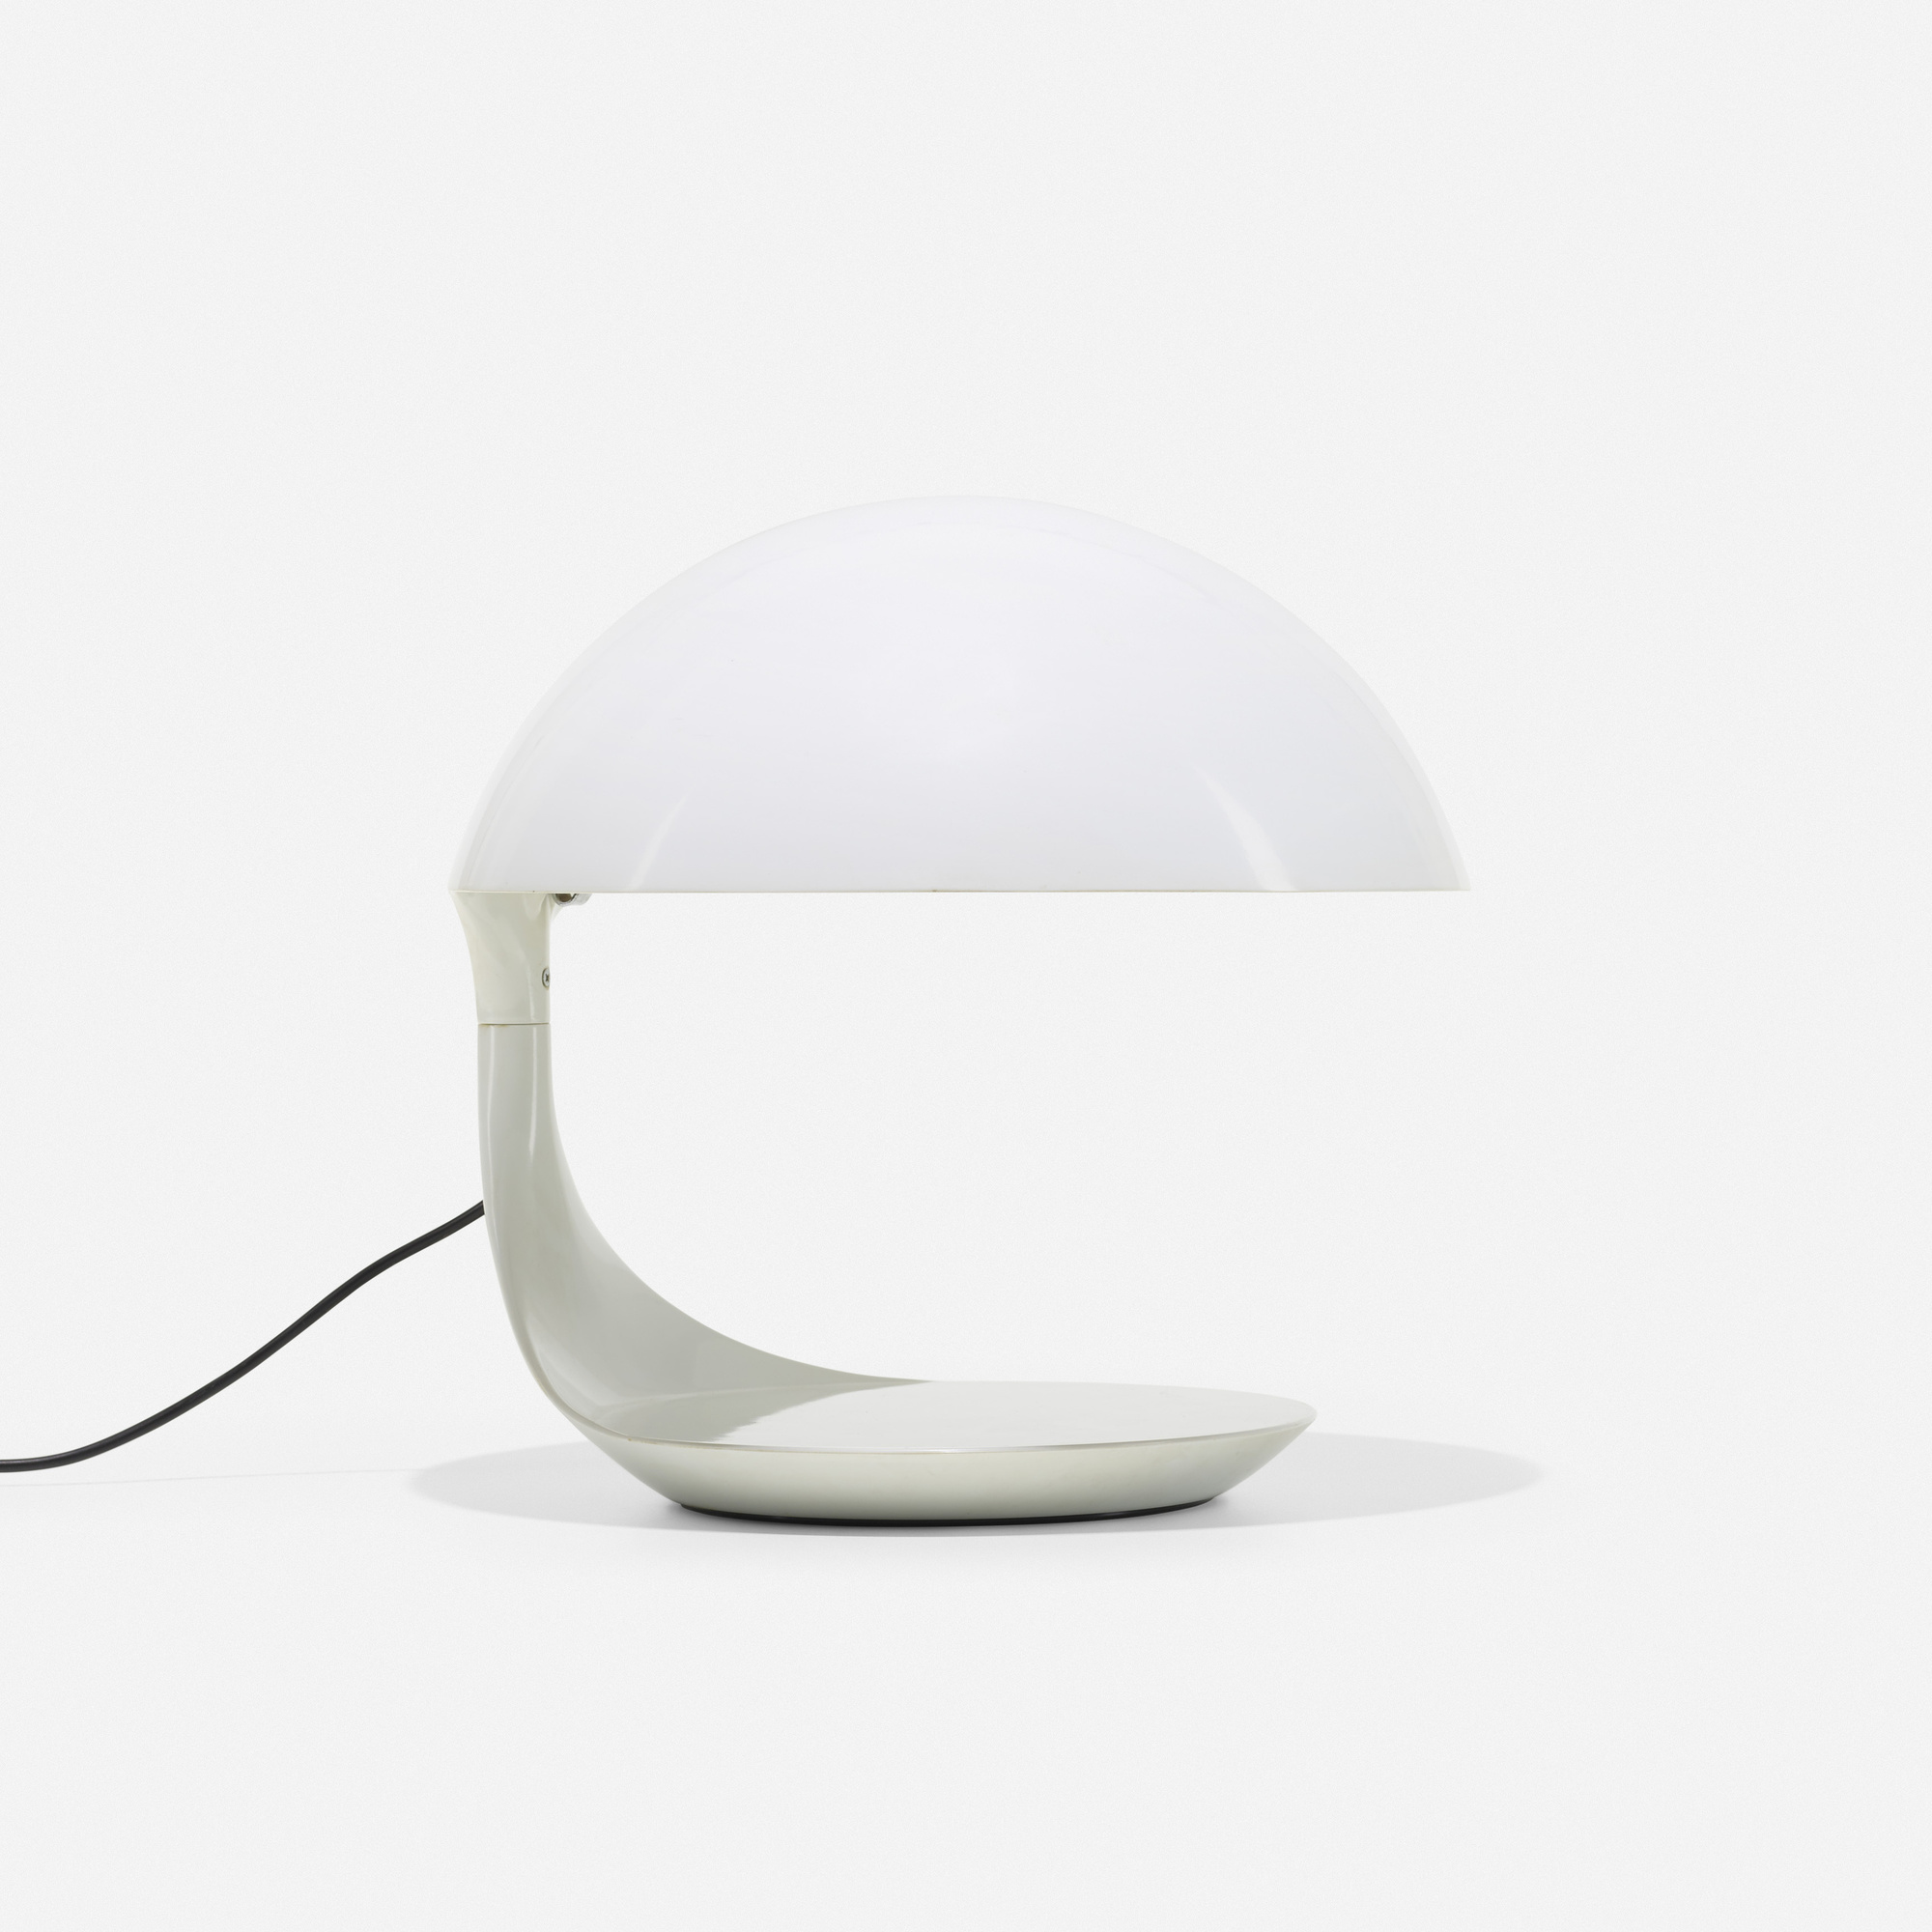 256: Elio Martinelli / Cobra table lamp (1 of 3)